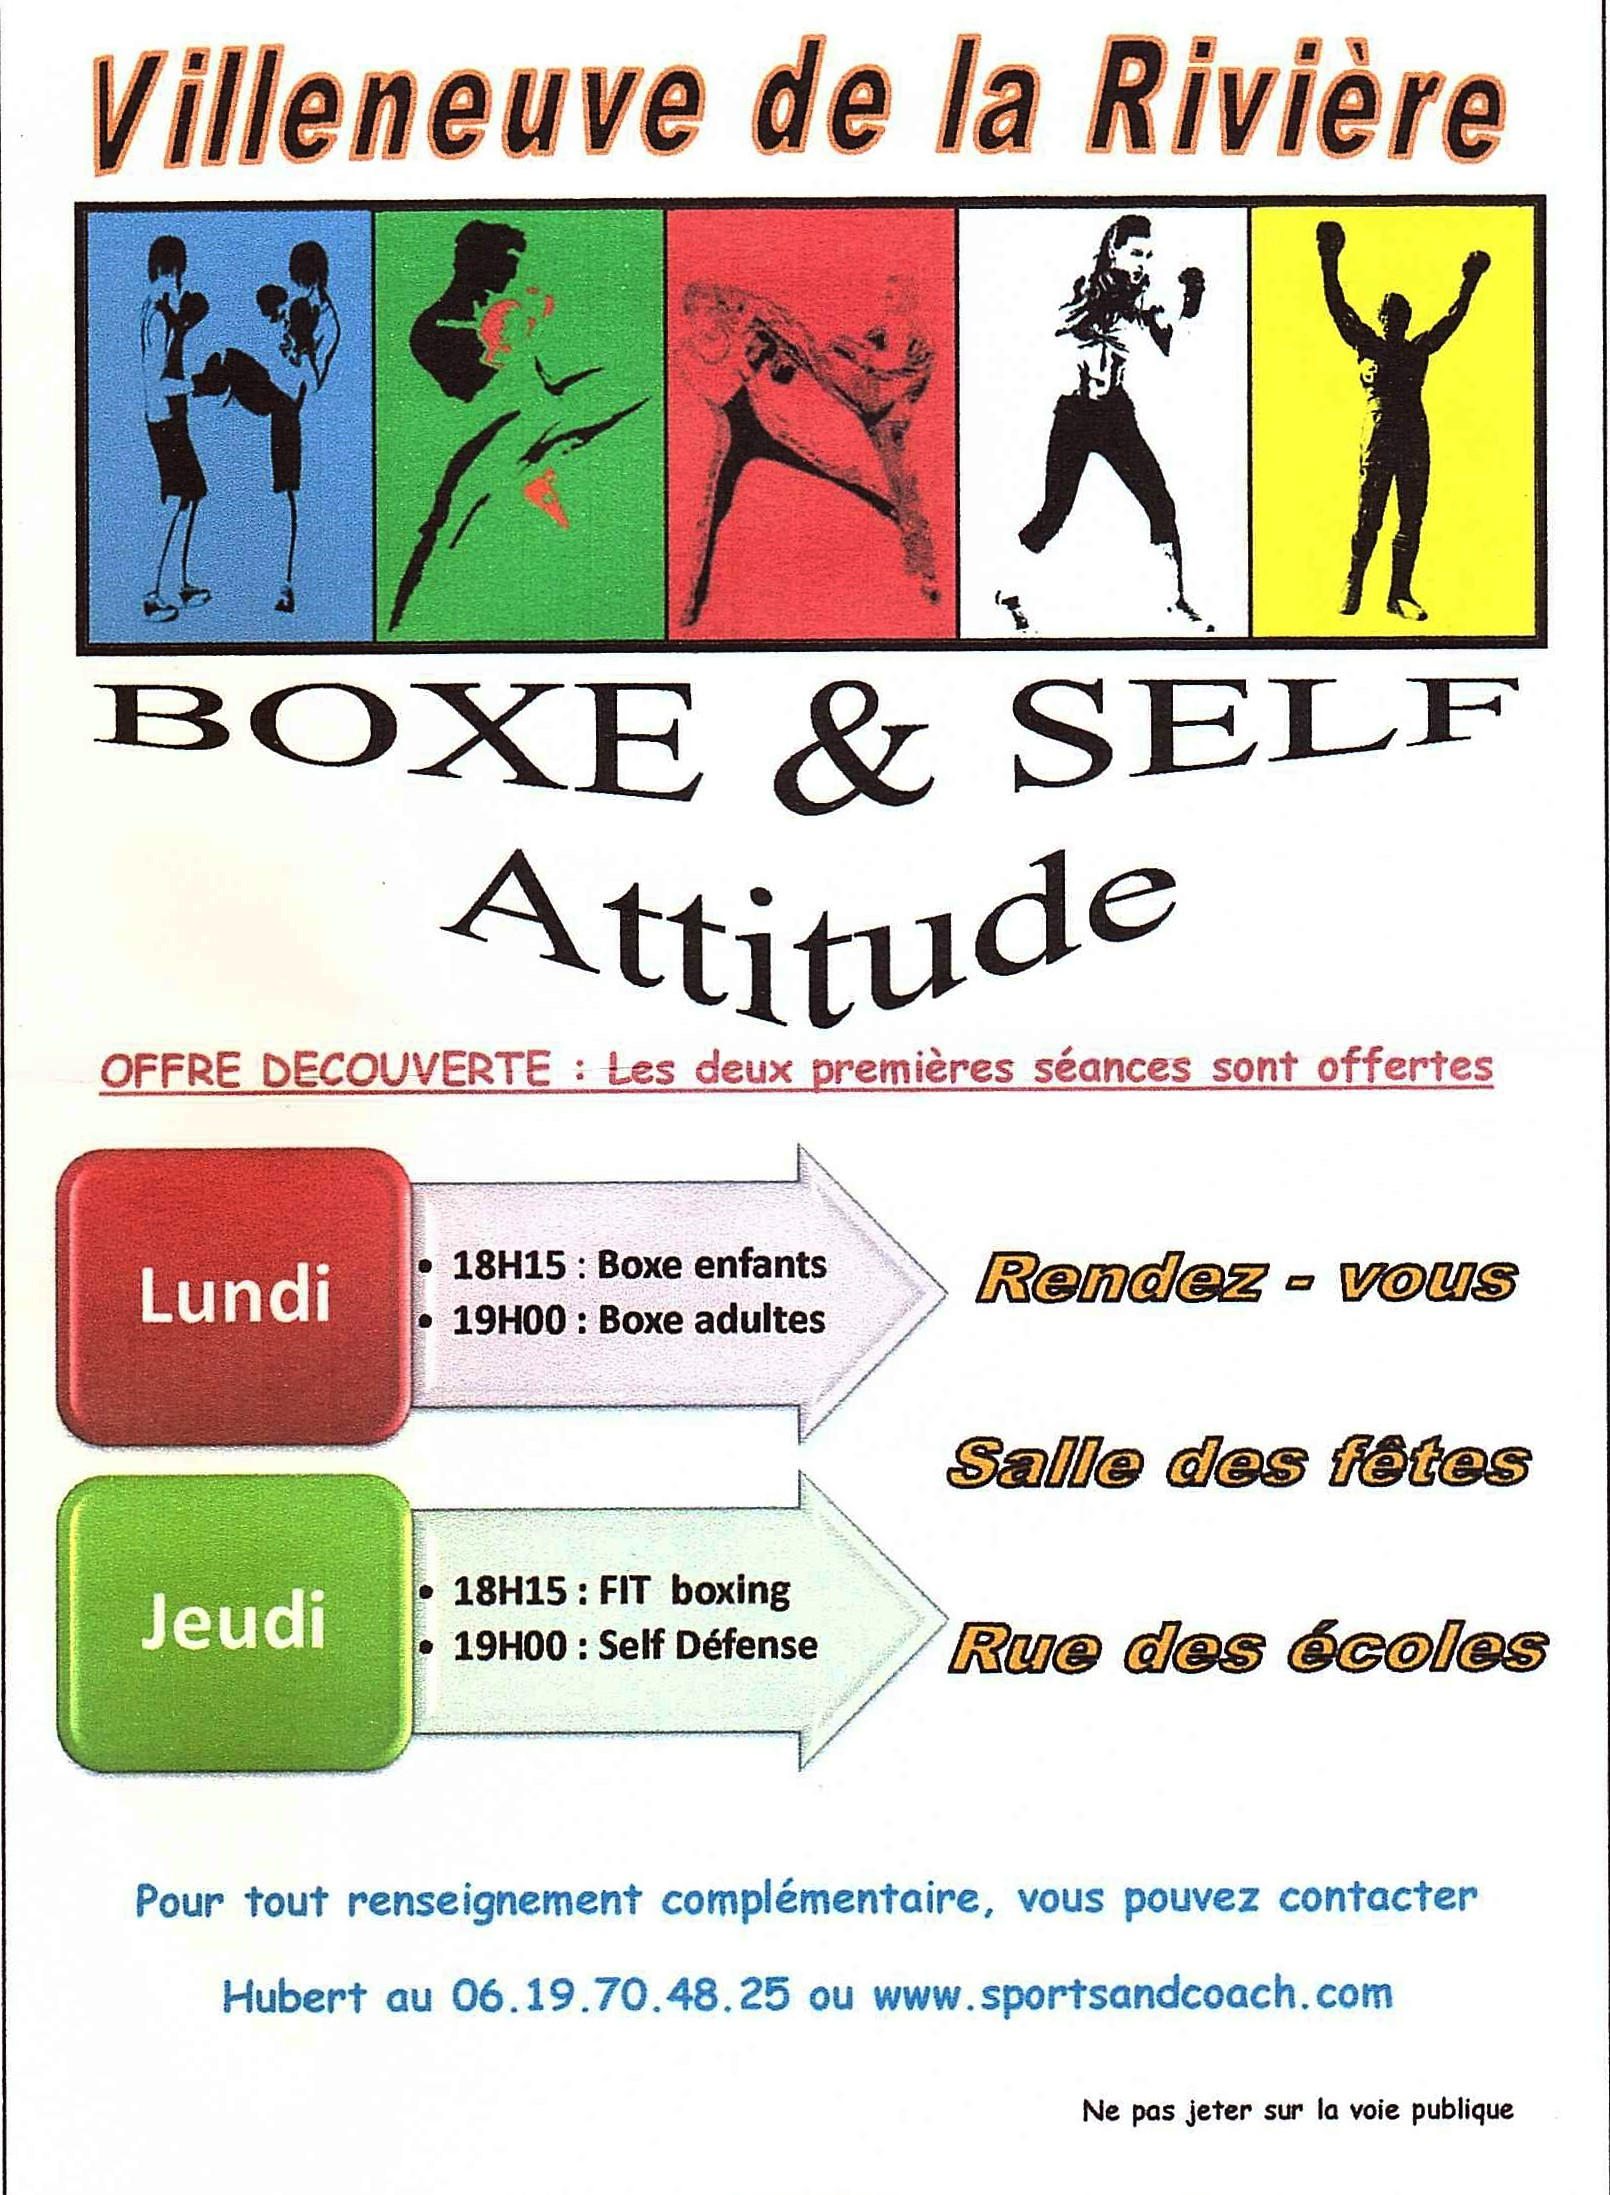 Boxe and Self Attitude : reprise des cours